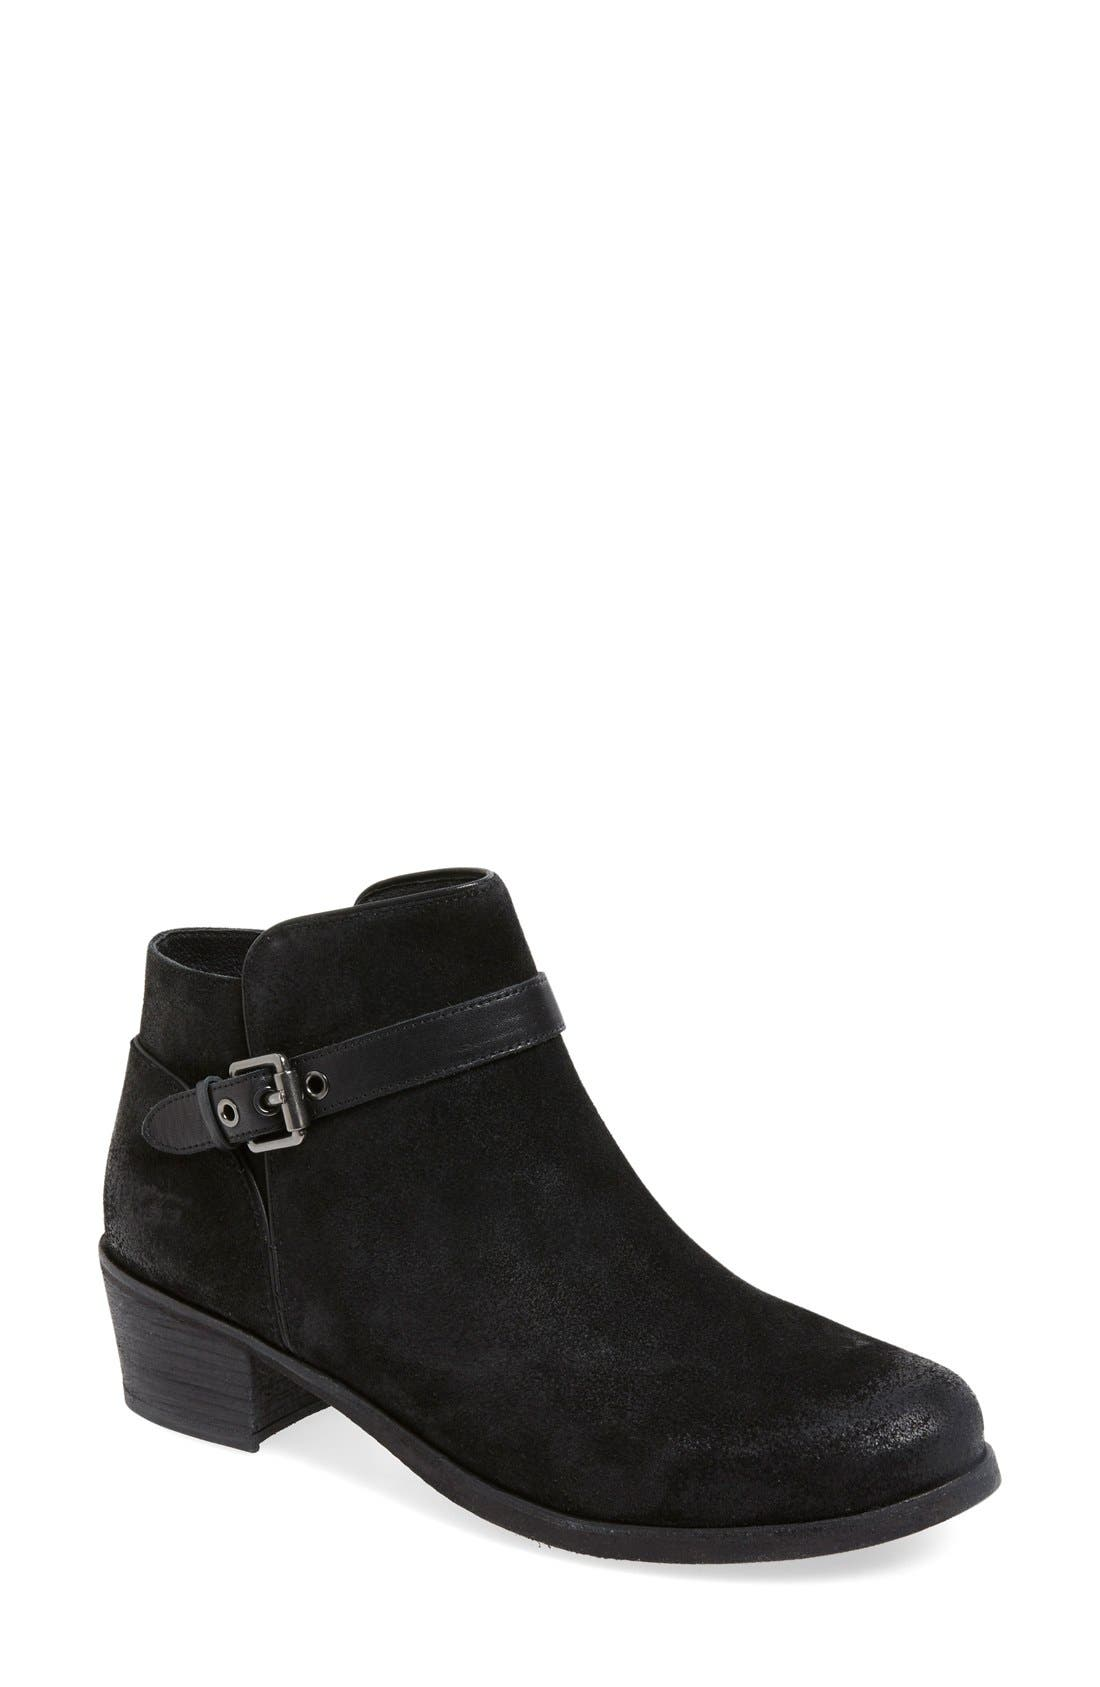 Alternate Image 1 Selected - UGG® 'Bellamy' Bootie (Women)